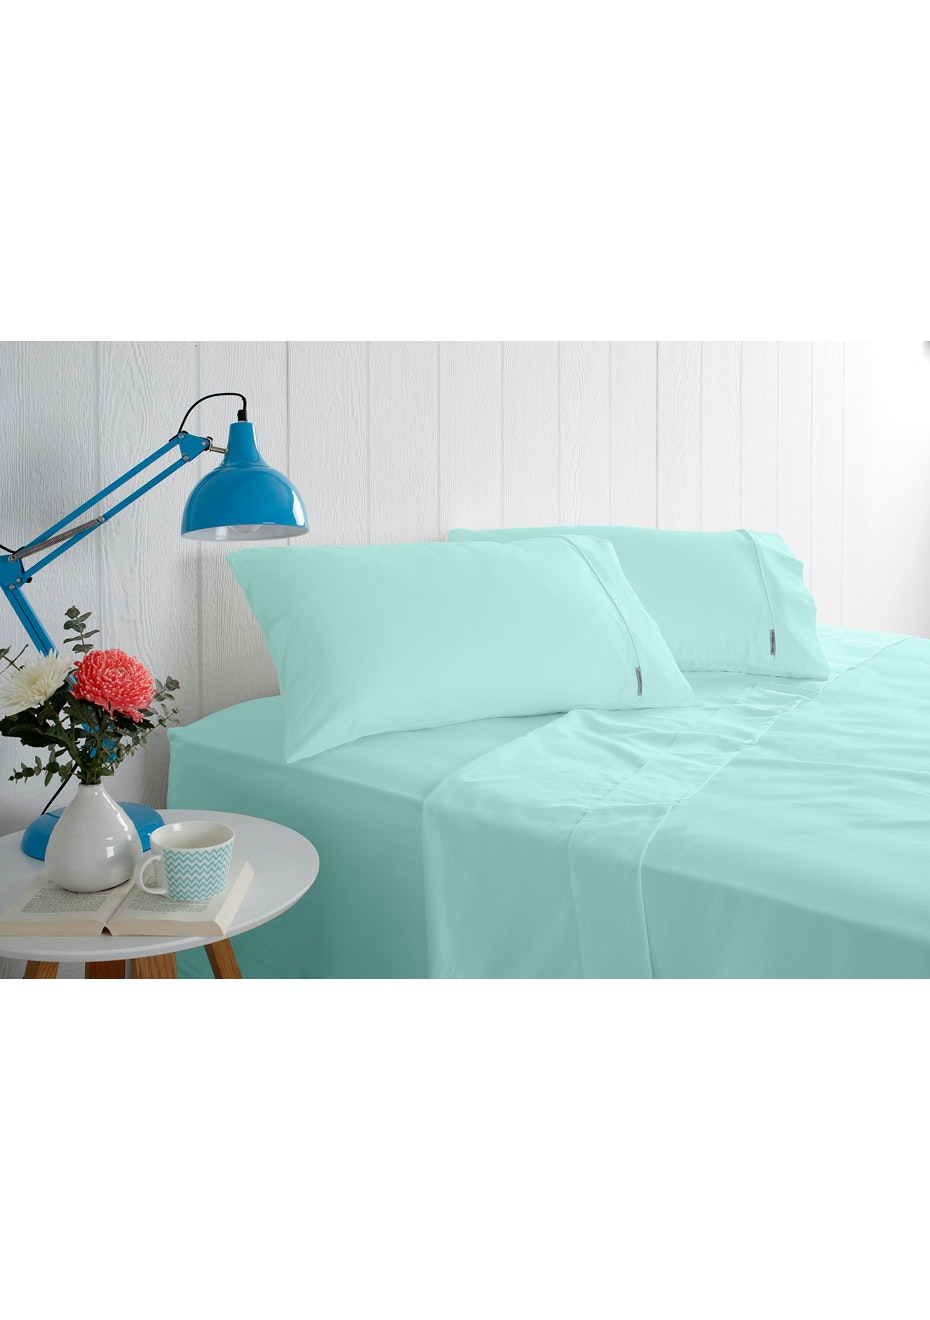 Odyssey Living 1000 Thread Count – Cotton Rich Sheet Sets -Mint - King Bed